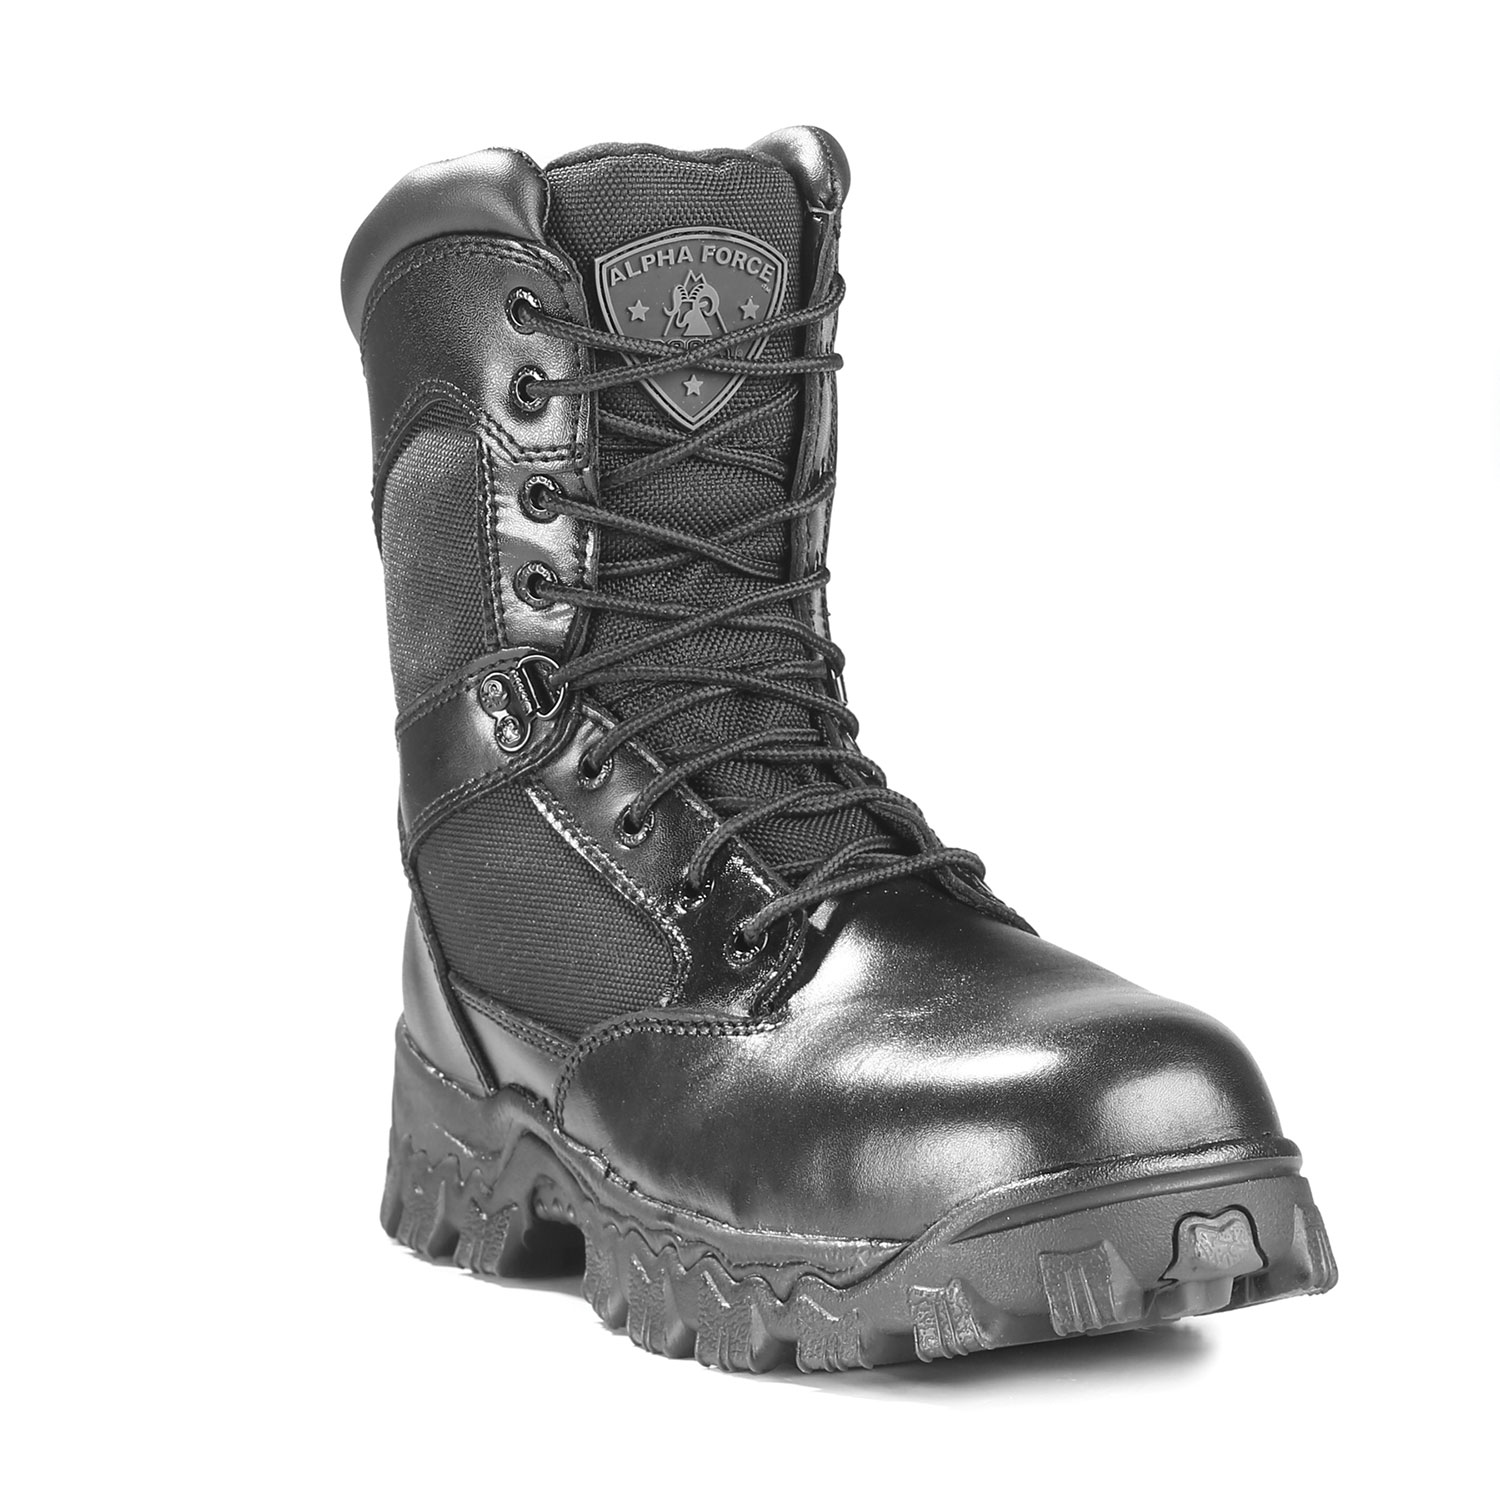 "Rocky 8"" AlphaForce Side Zip Composite Toe Waterproof Boot"